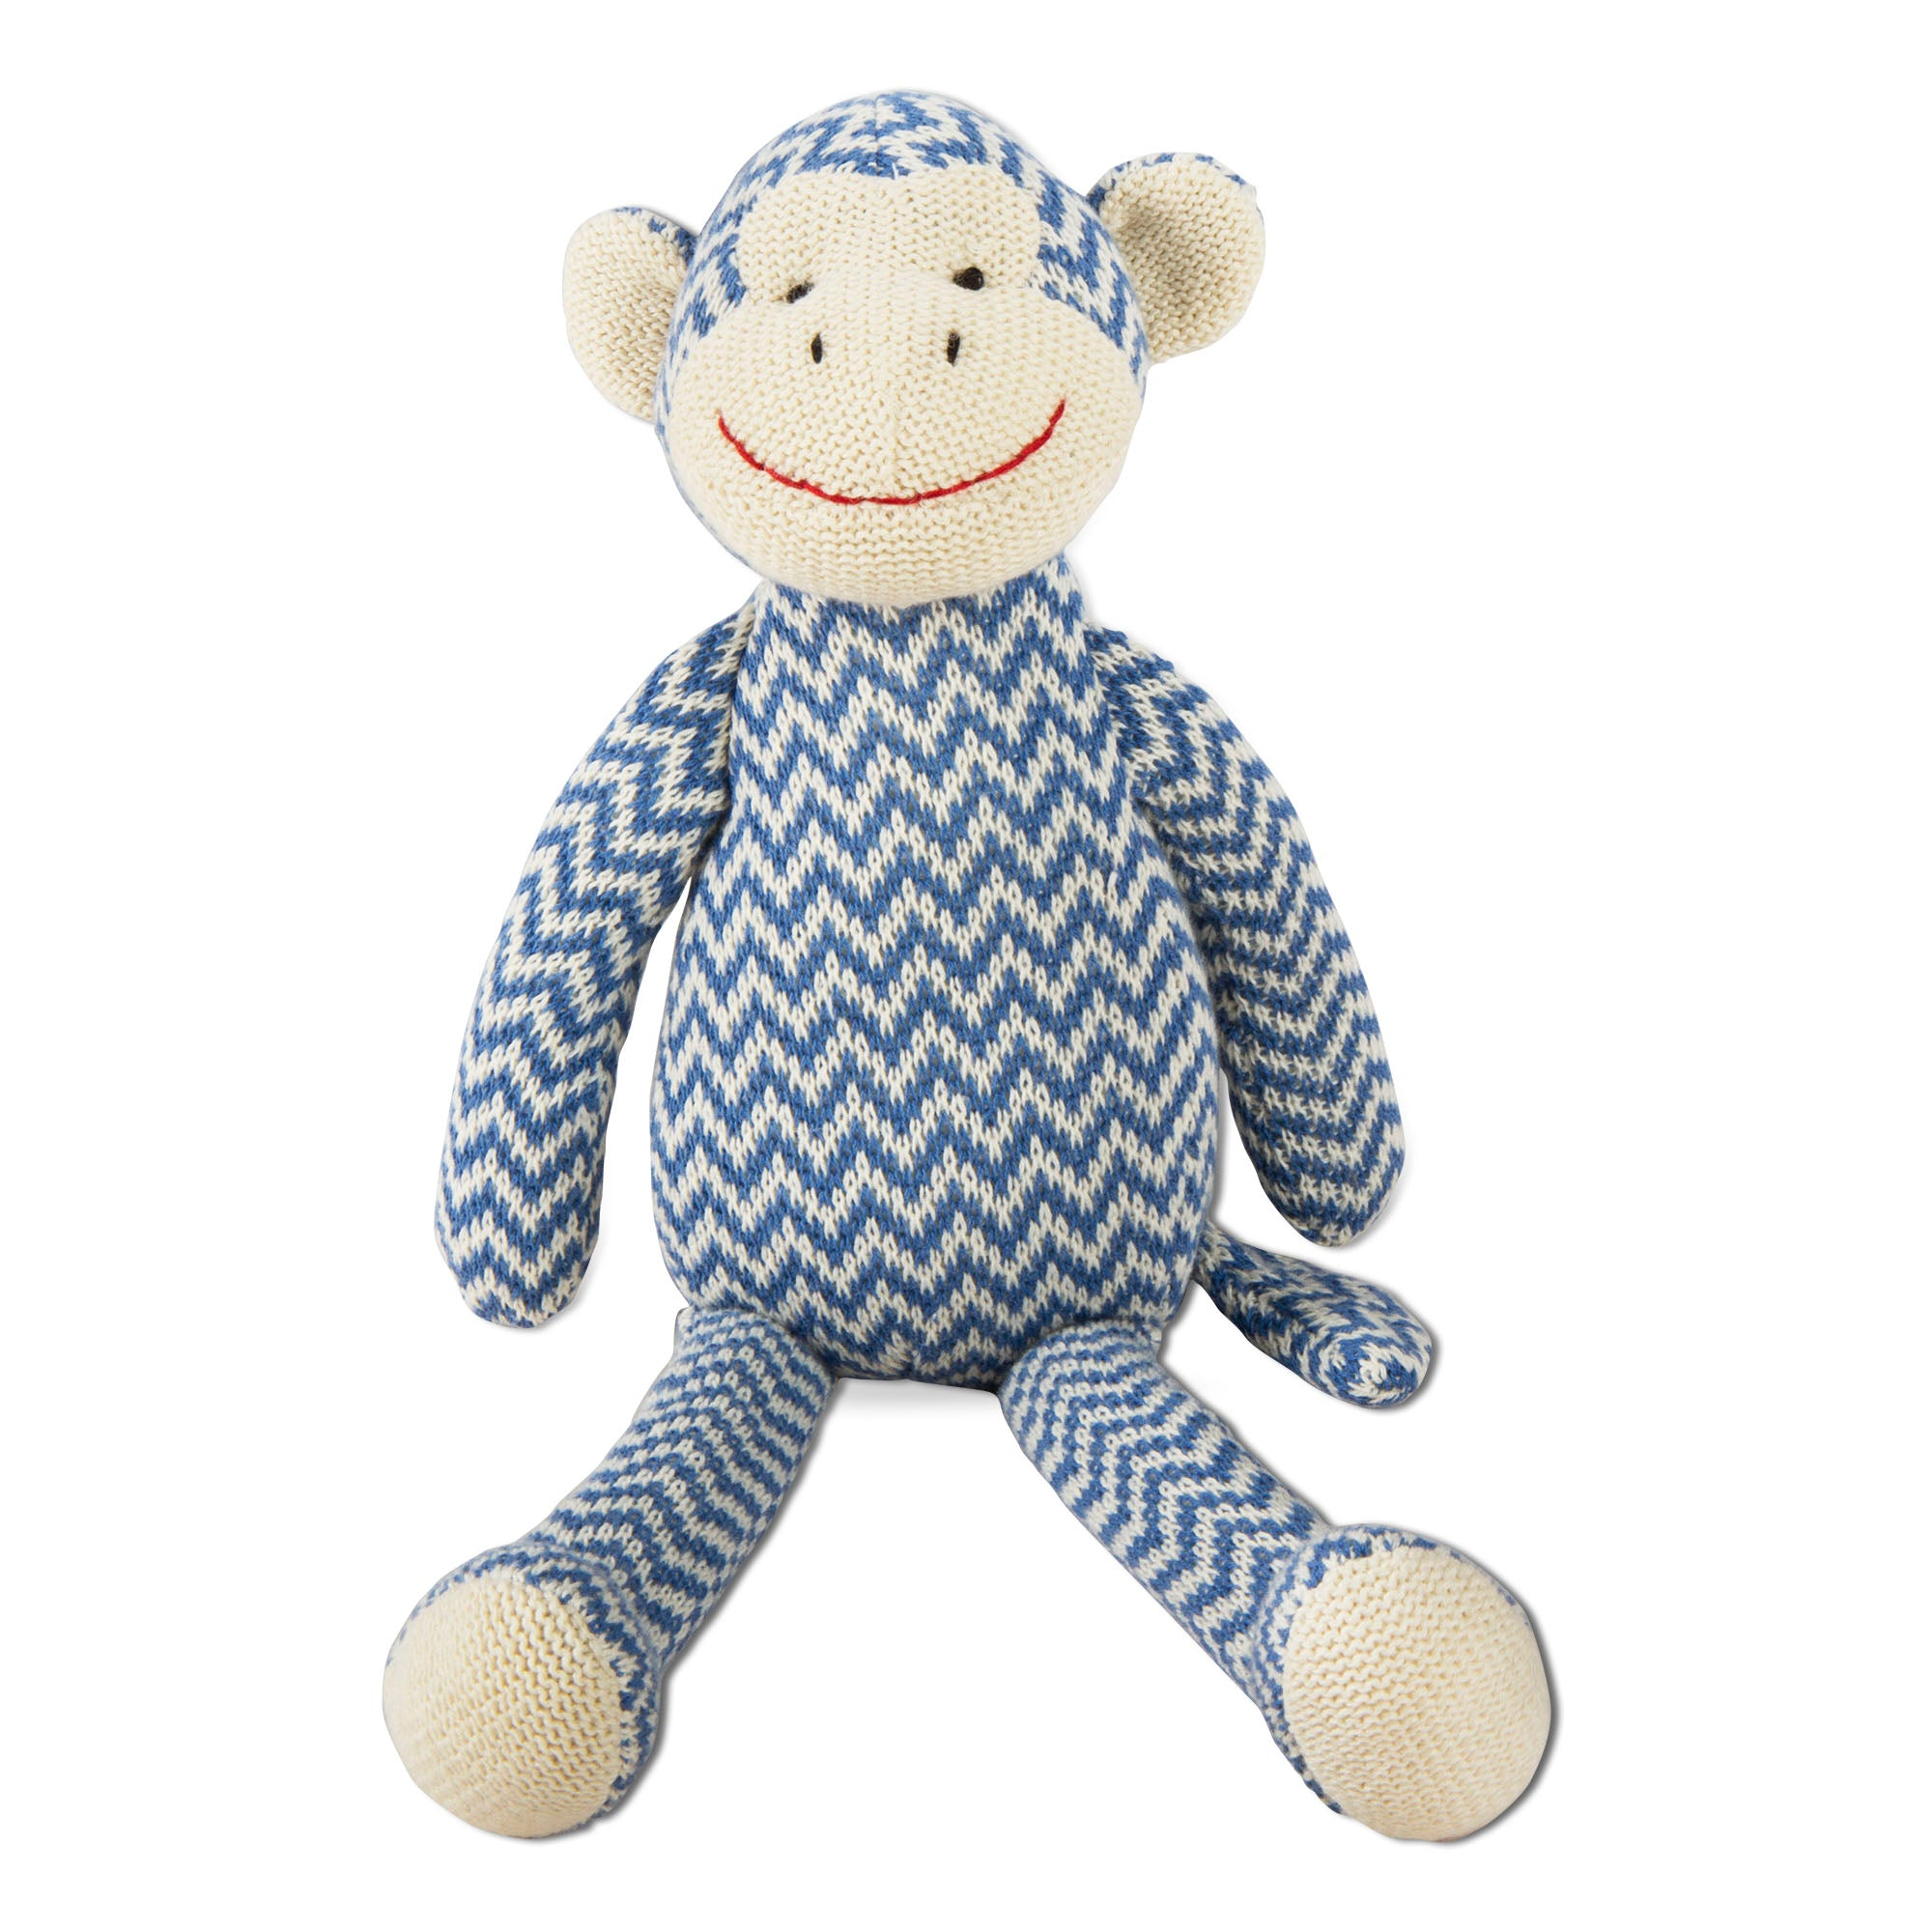 Knit Plush Monkey